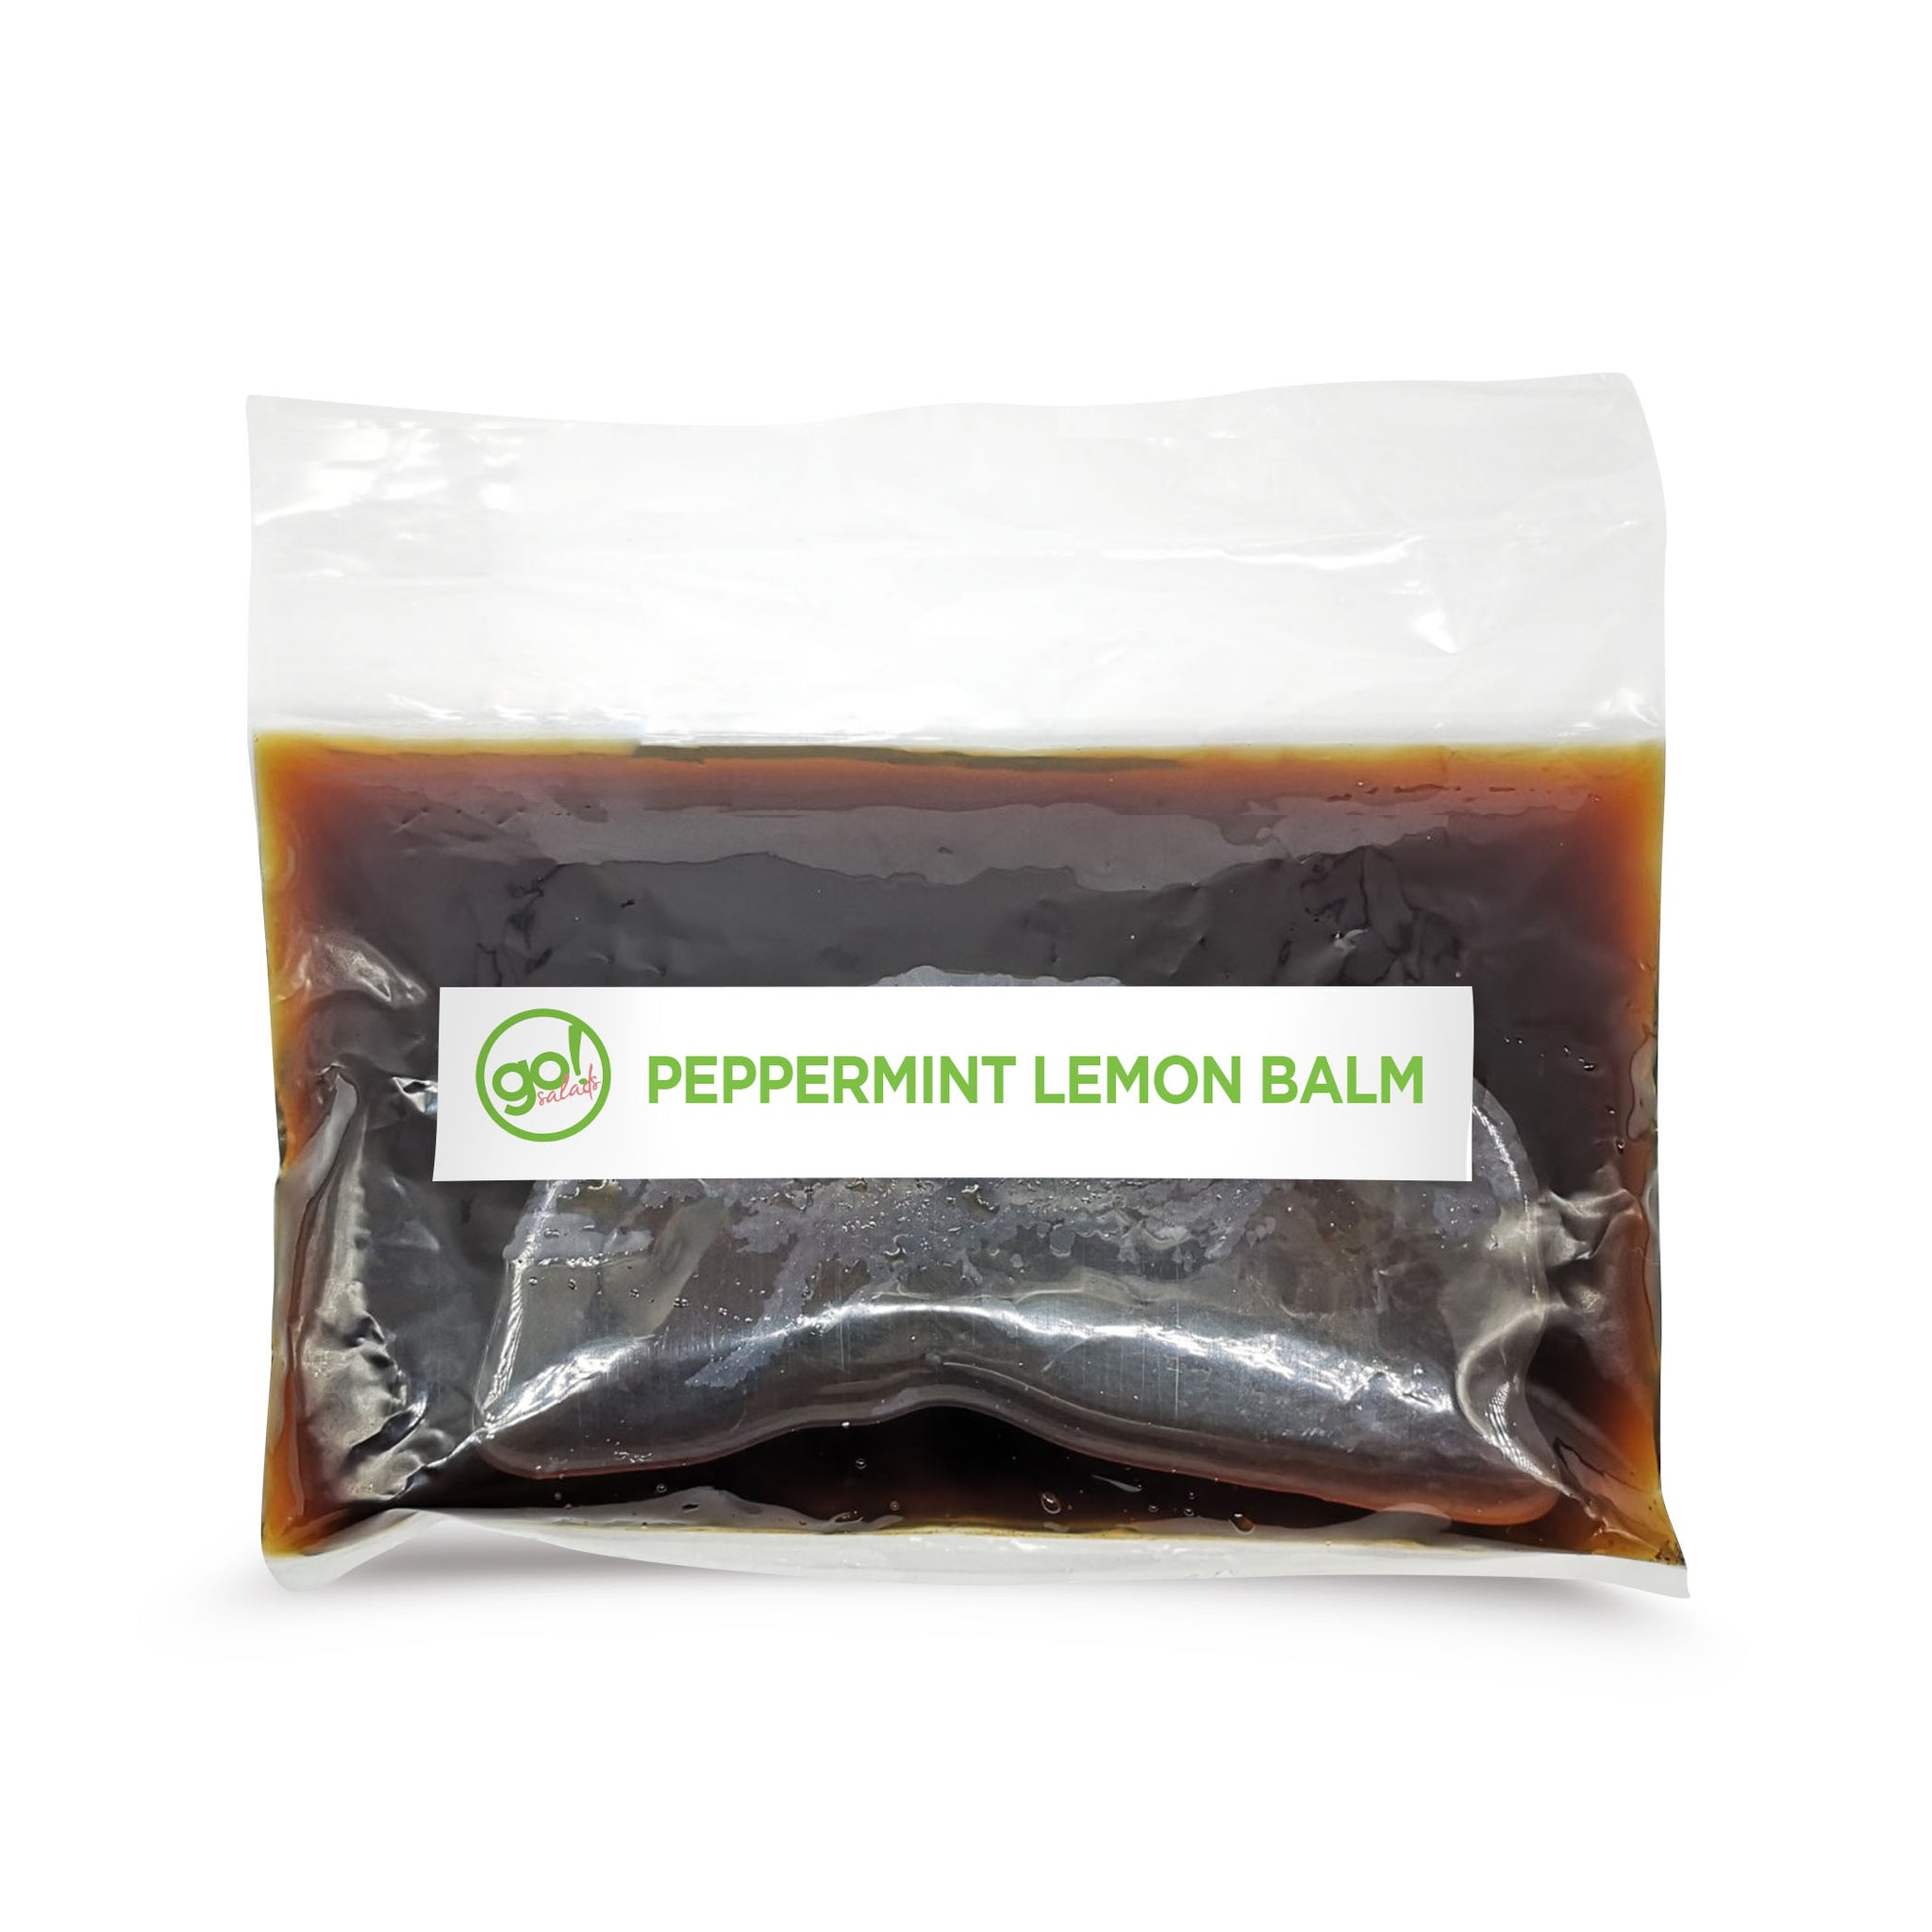 Peppermint Lemonbalm Concentrate - Go! Salads Grocer